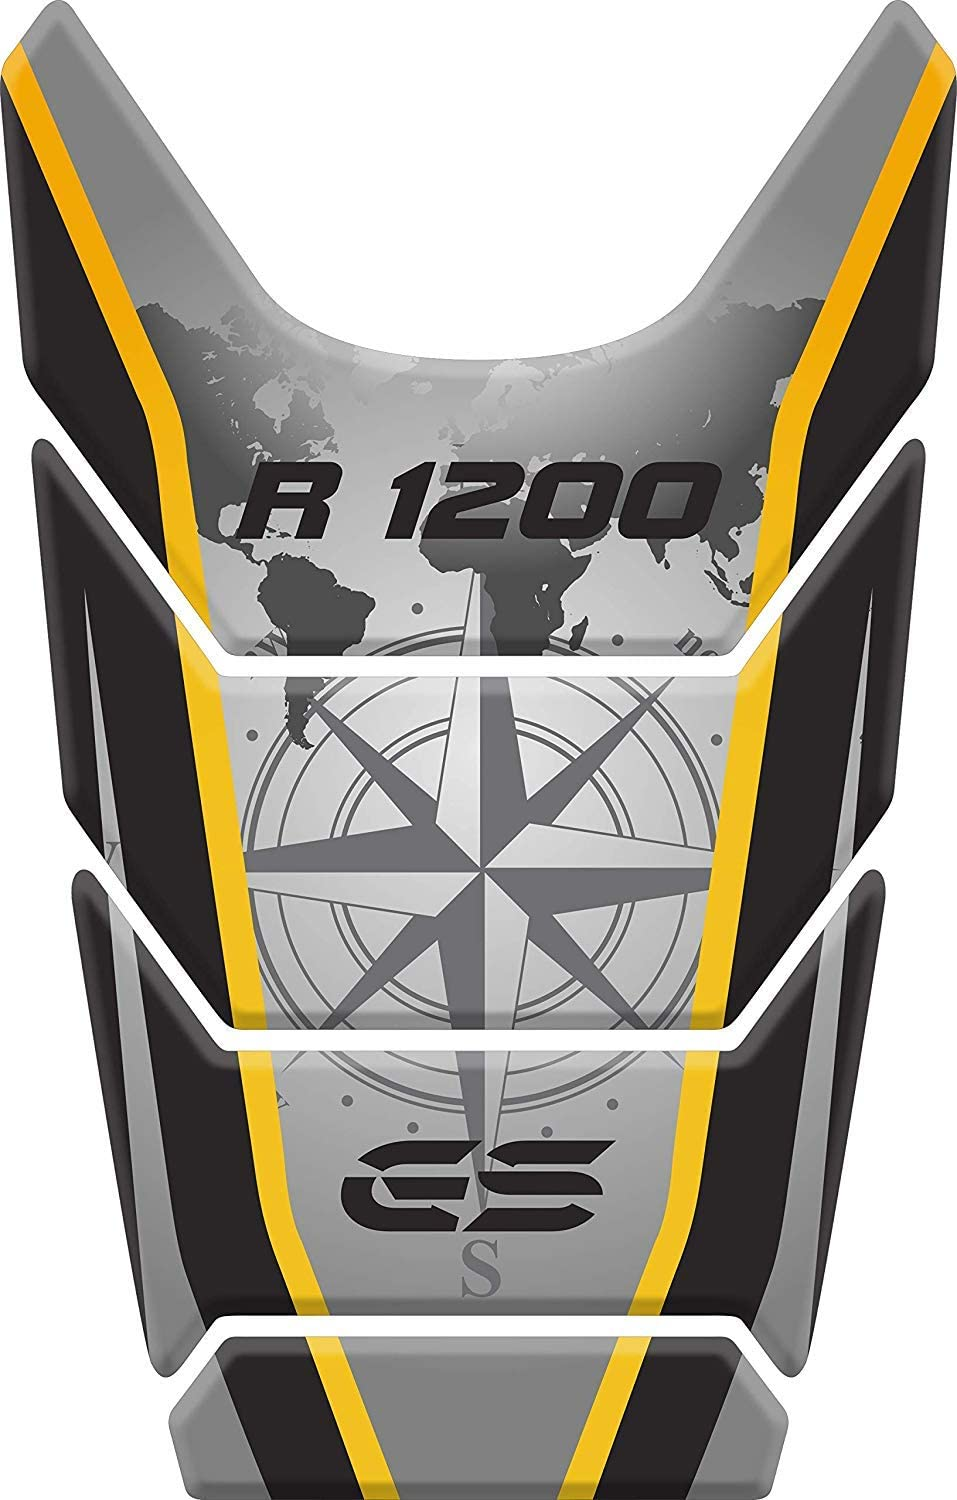 Stickers for fuel tank tankpad 3D effect resin adhesive sticker compatible with BM.W BM.W R 1200 GS R1200GS ADV Adventure (Yellow)